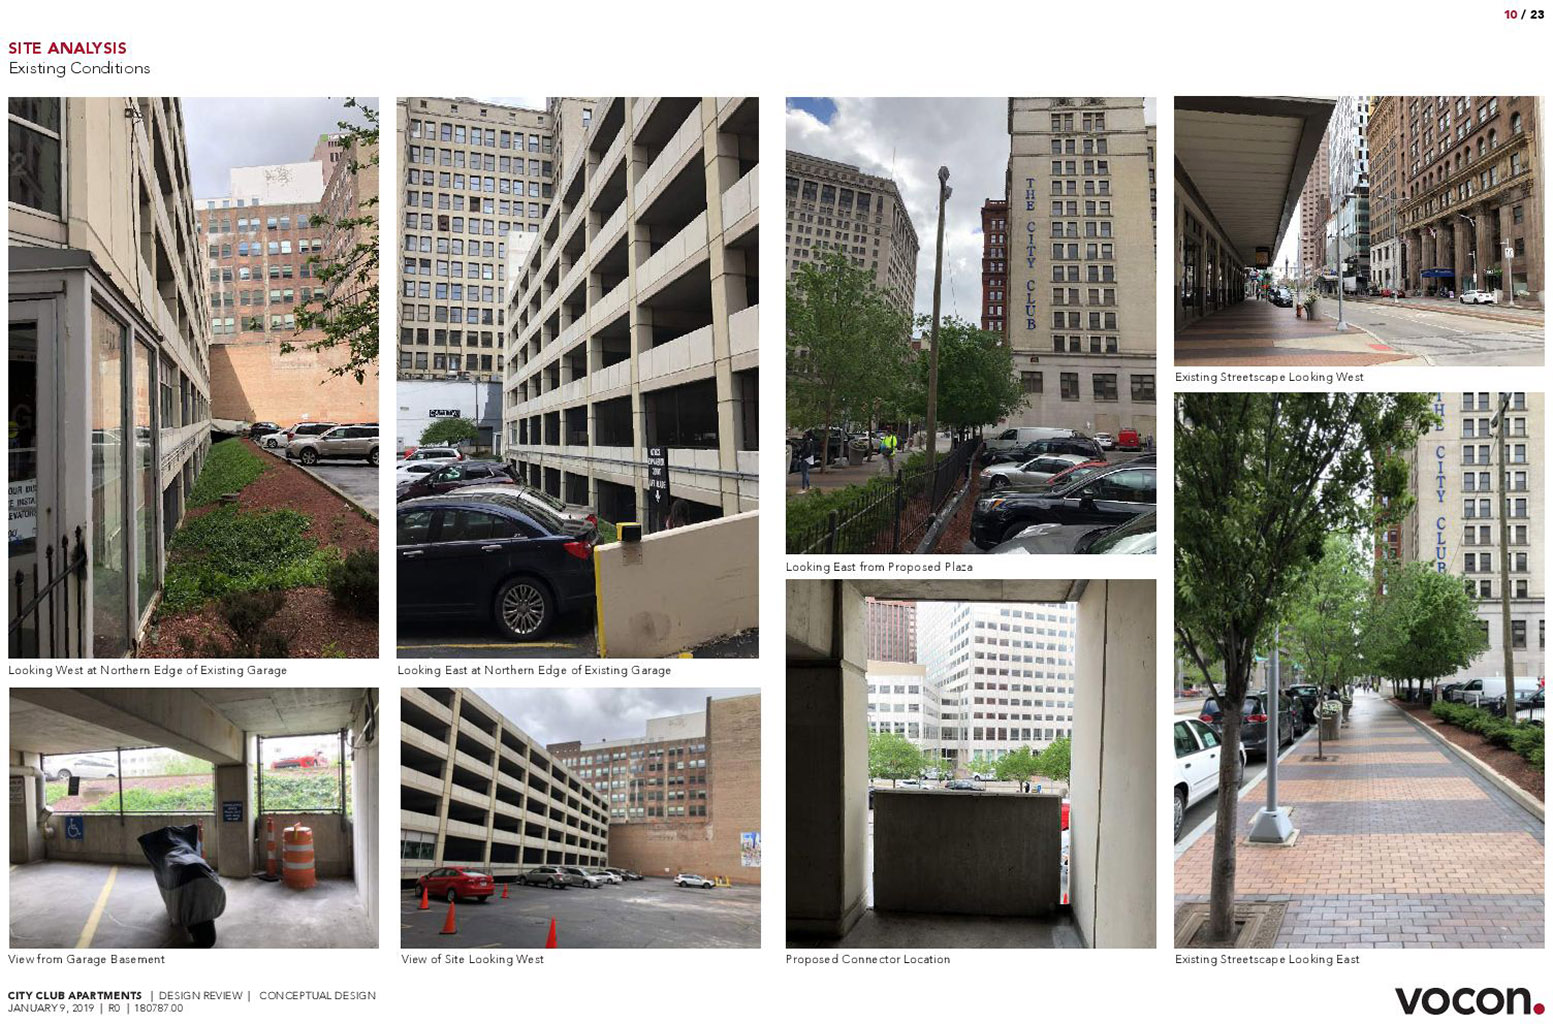 City_Club_Apartments_IMG_06.jpg